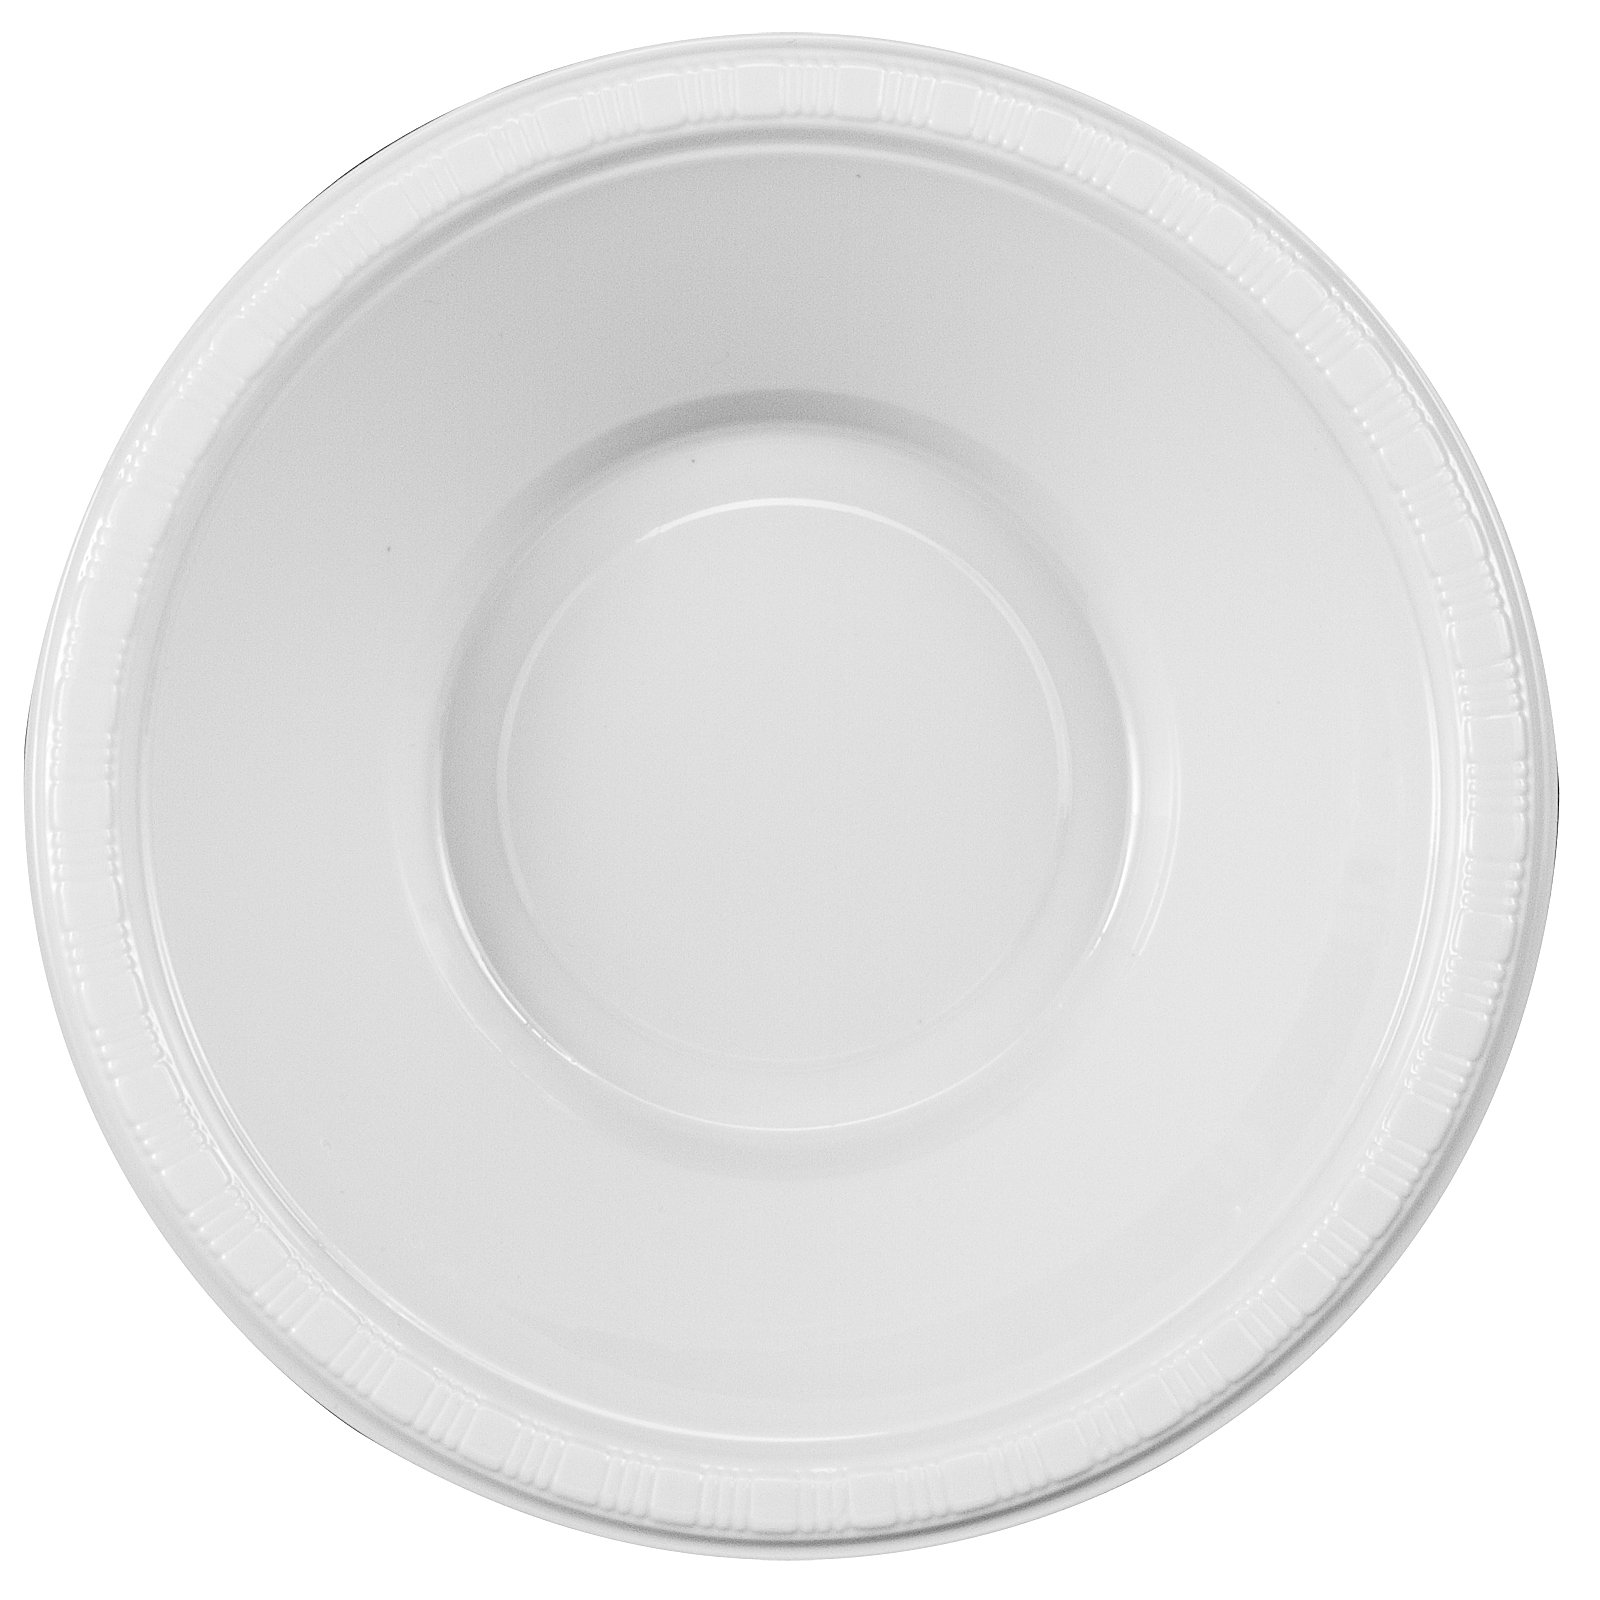 Bright White Plastic Bowls, Pack of 20